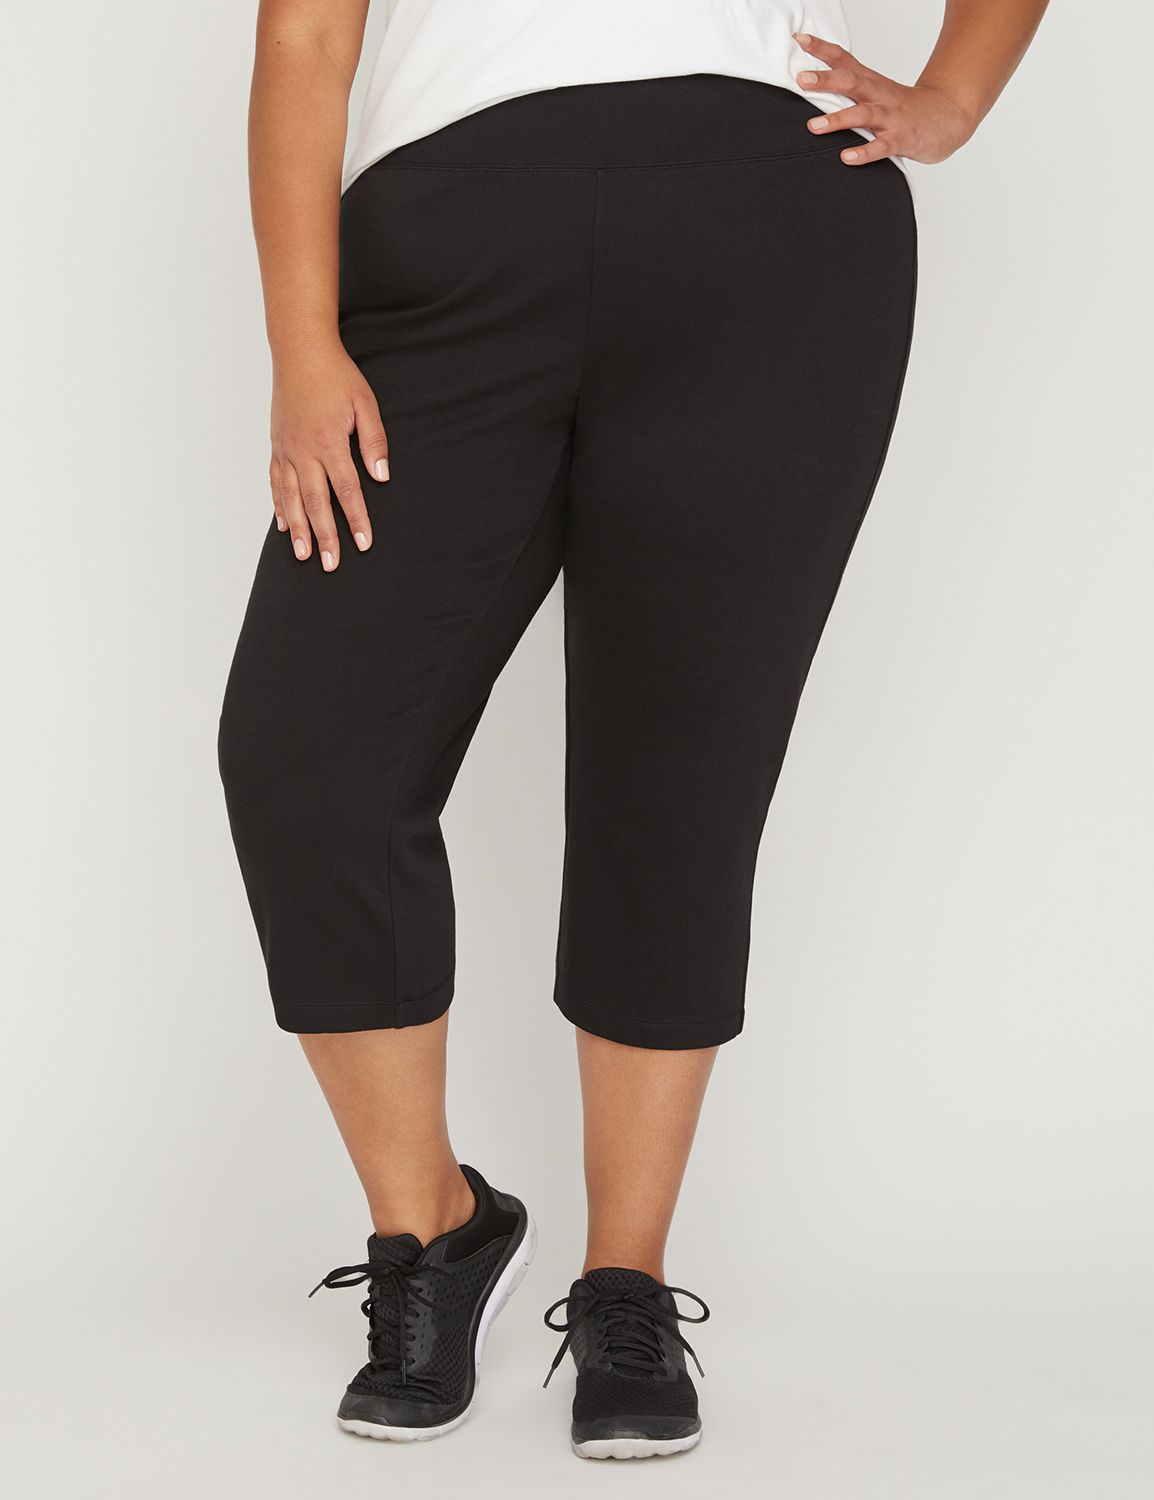 Yoga Capri Yoga Capri MP-300054224